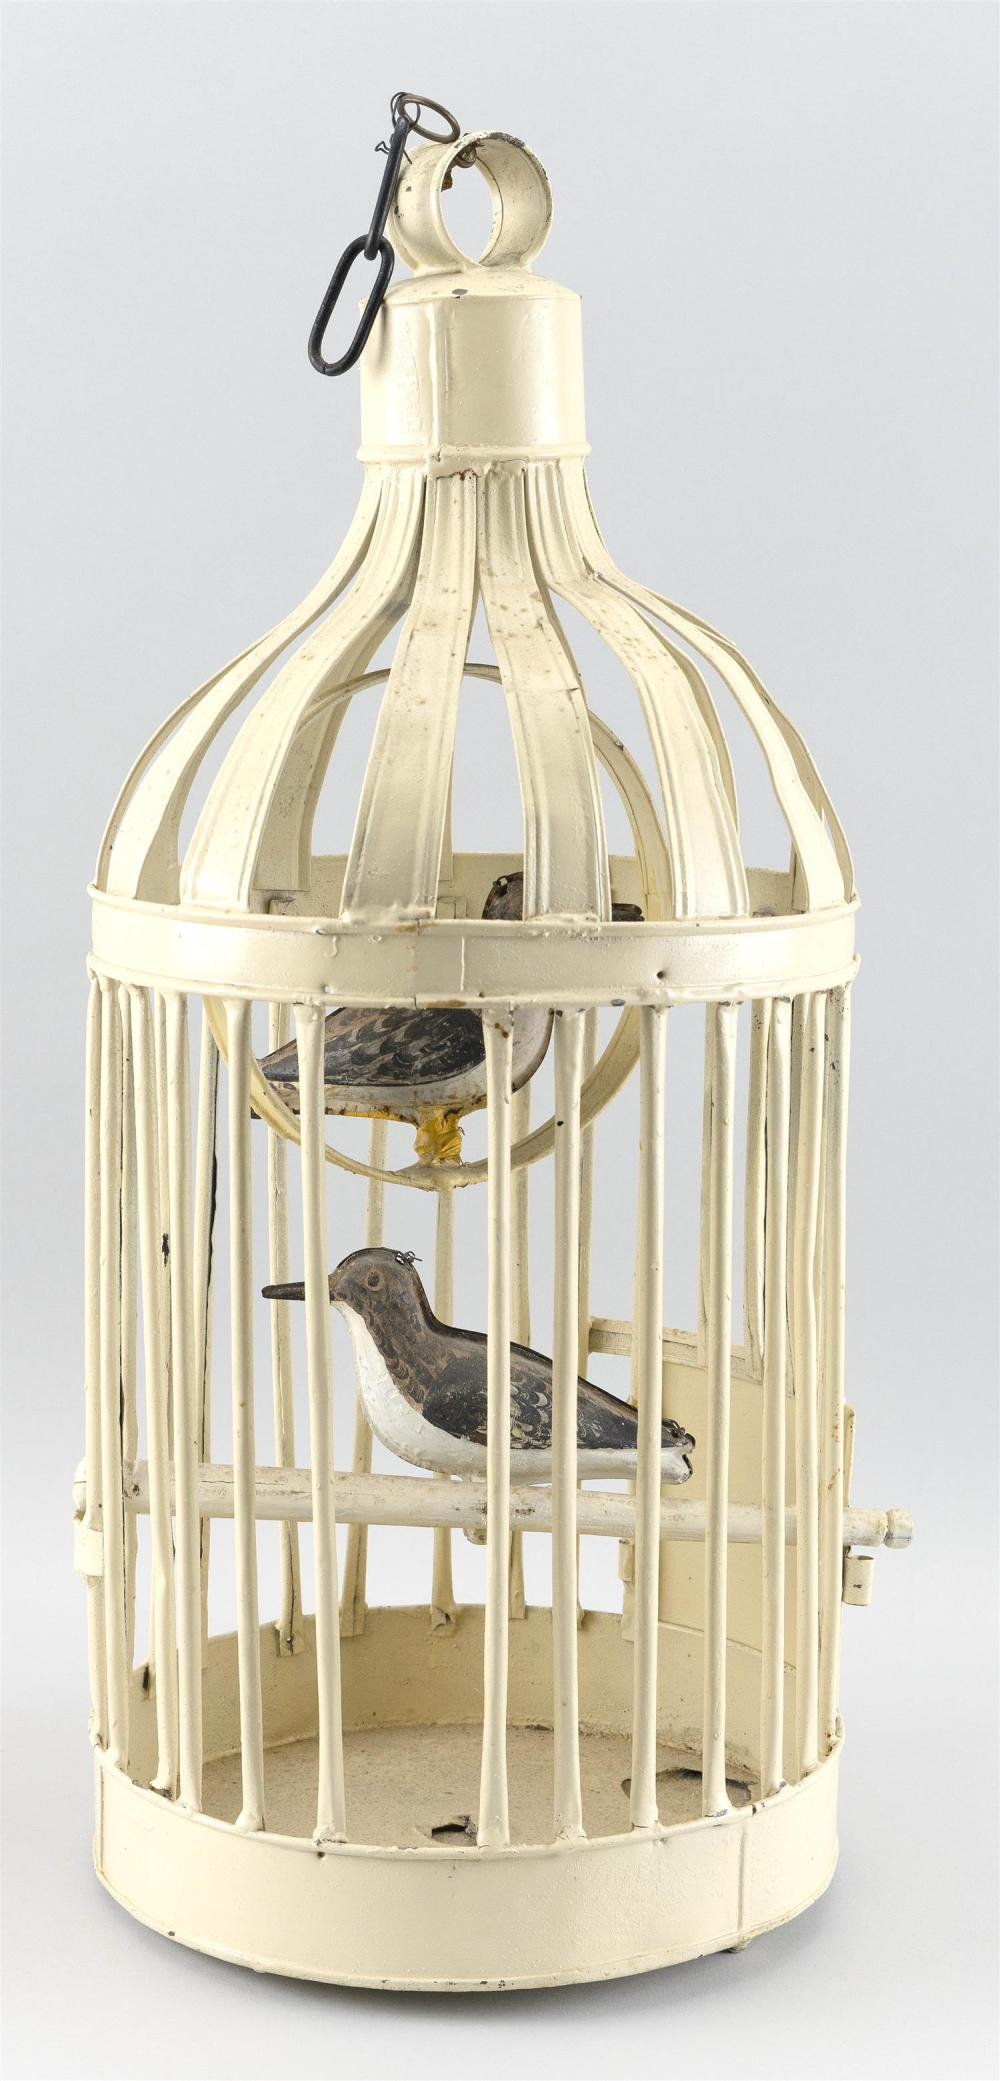 TIN BIRDCAGE CONTAINING TWO TIN SANDERLING DECOYS Circa 1880 decoys in original paint. 20th Century birdcage painted white. Total he...